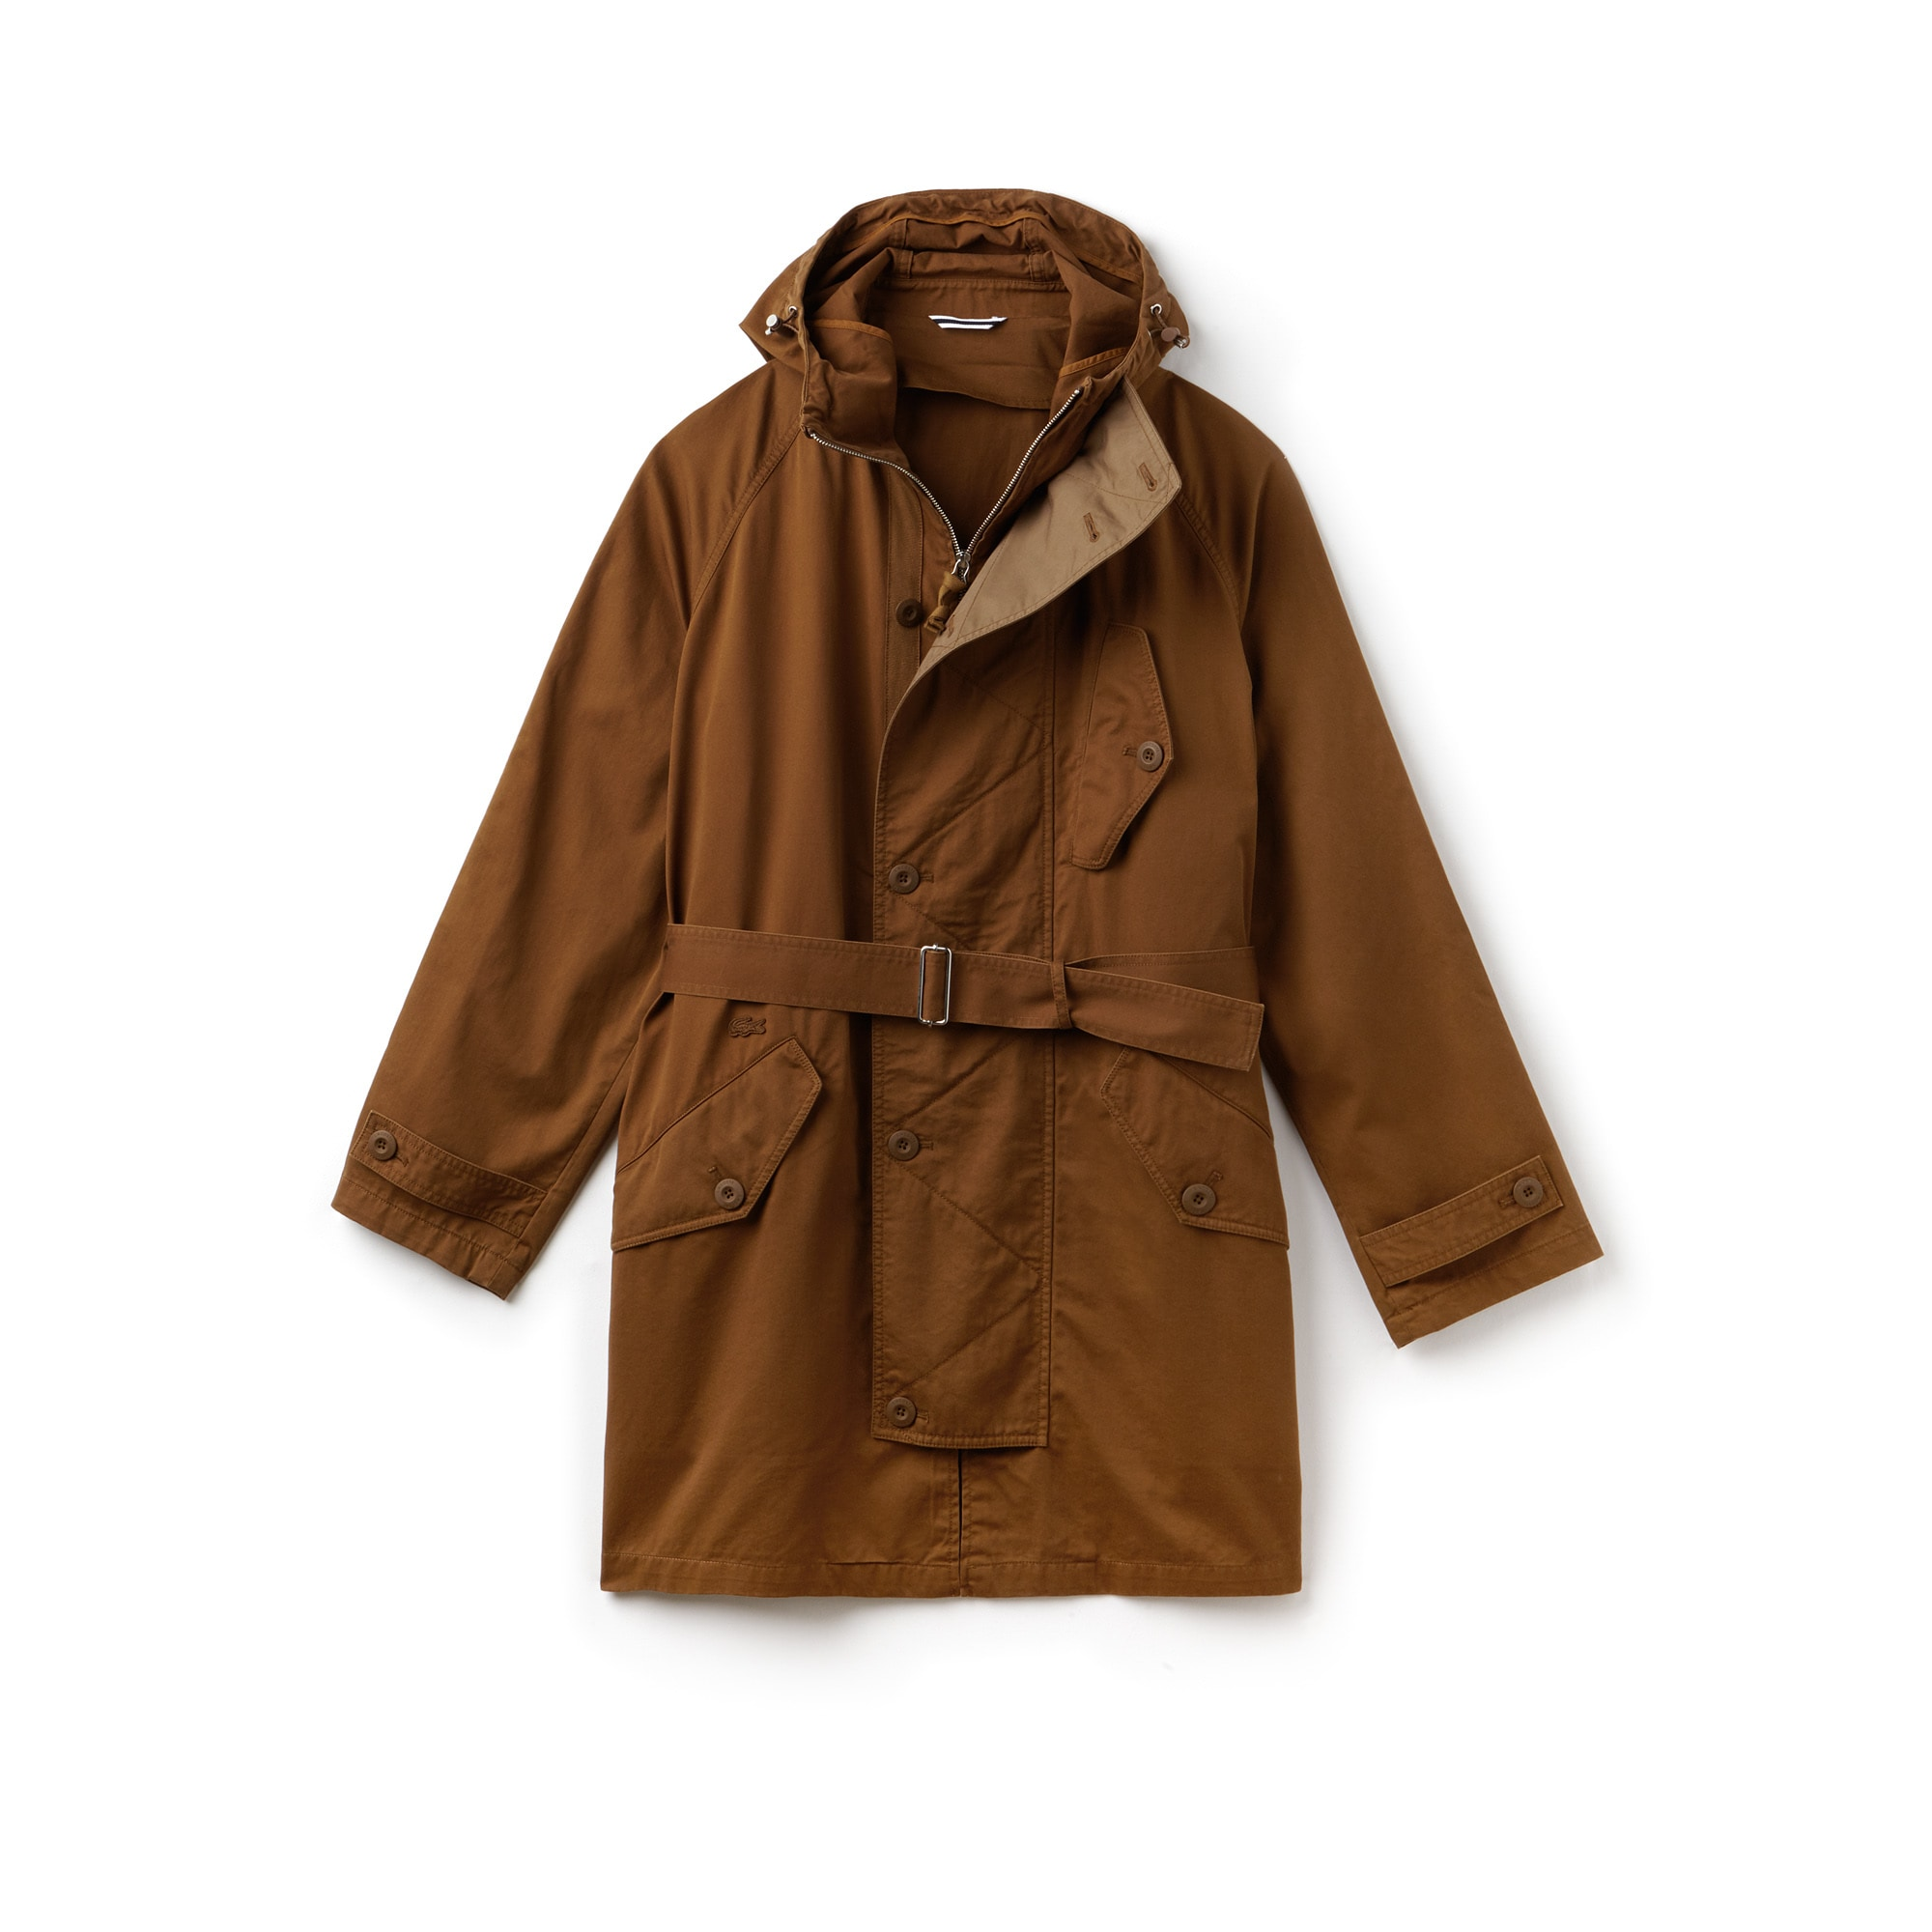 Men's Hooded Oversized Cotton Twill Parka